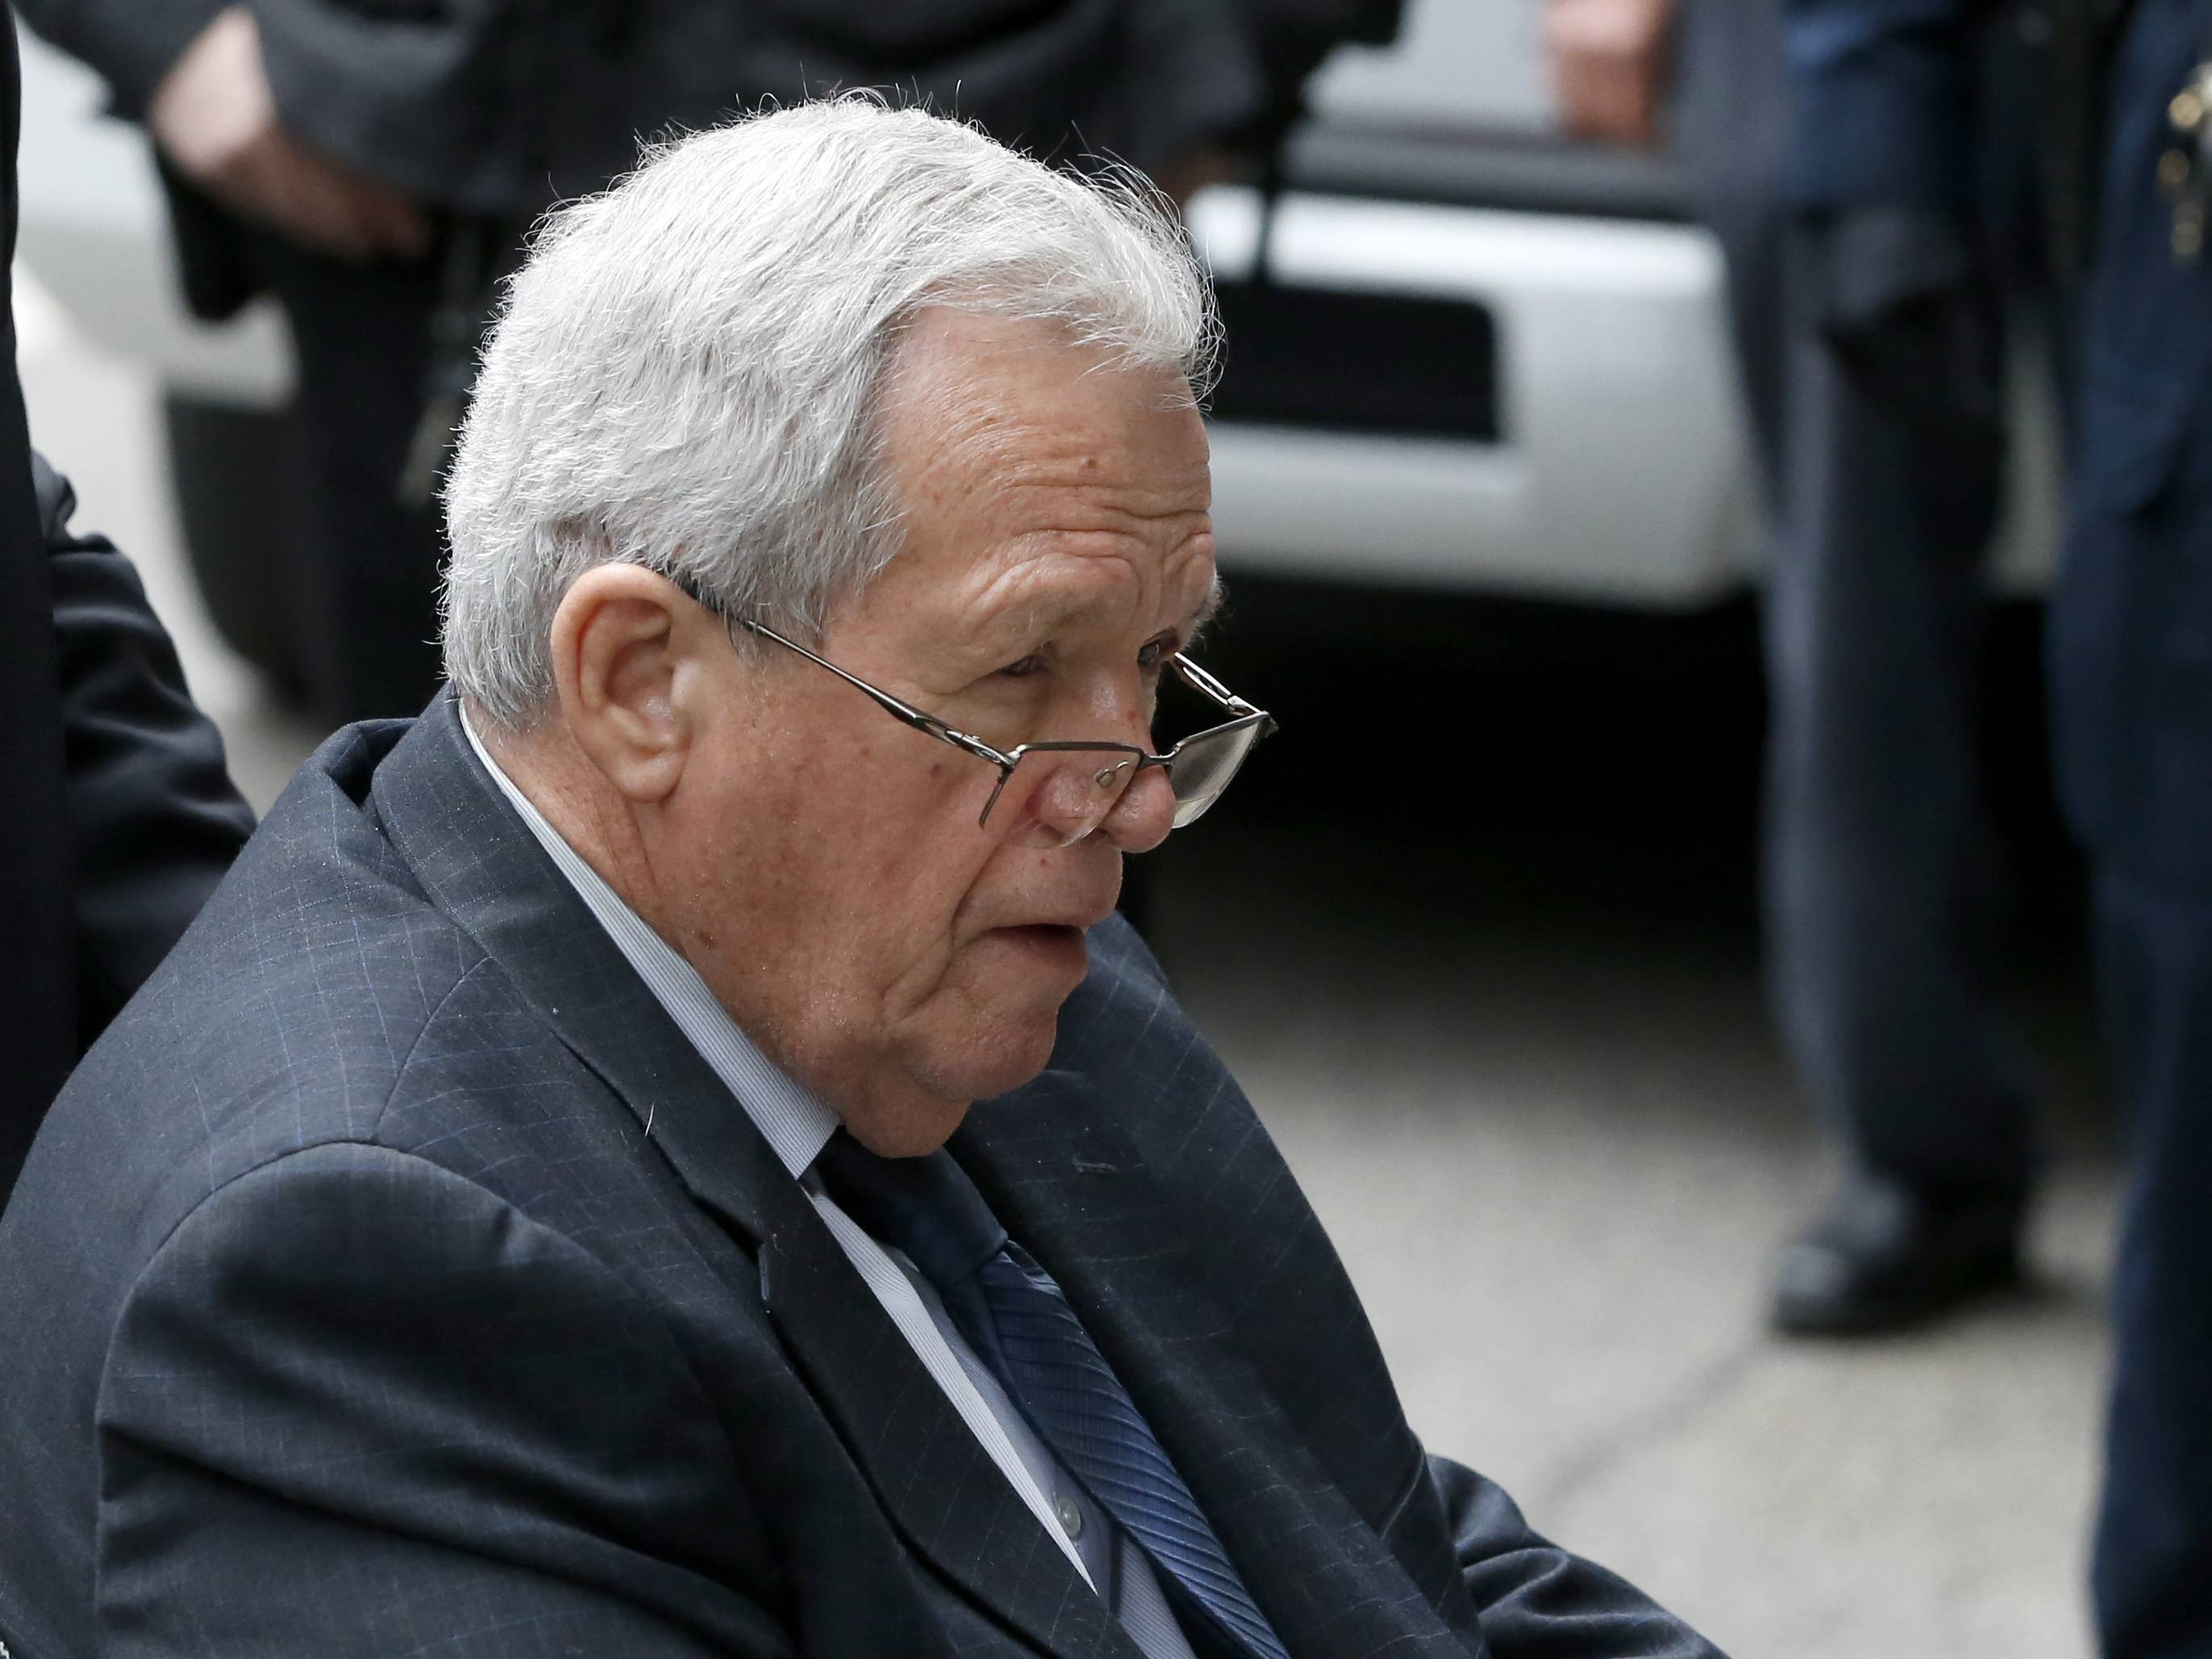 Former House Speaker Dennis Hastert leaves the federal courthouse in Chicago April 27.